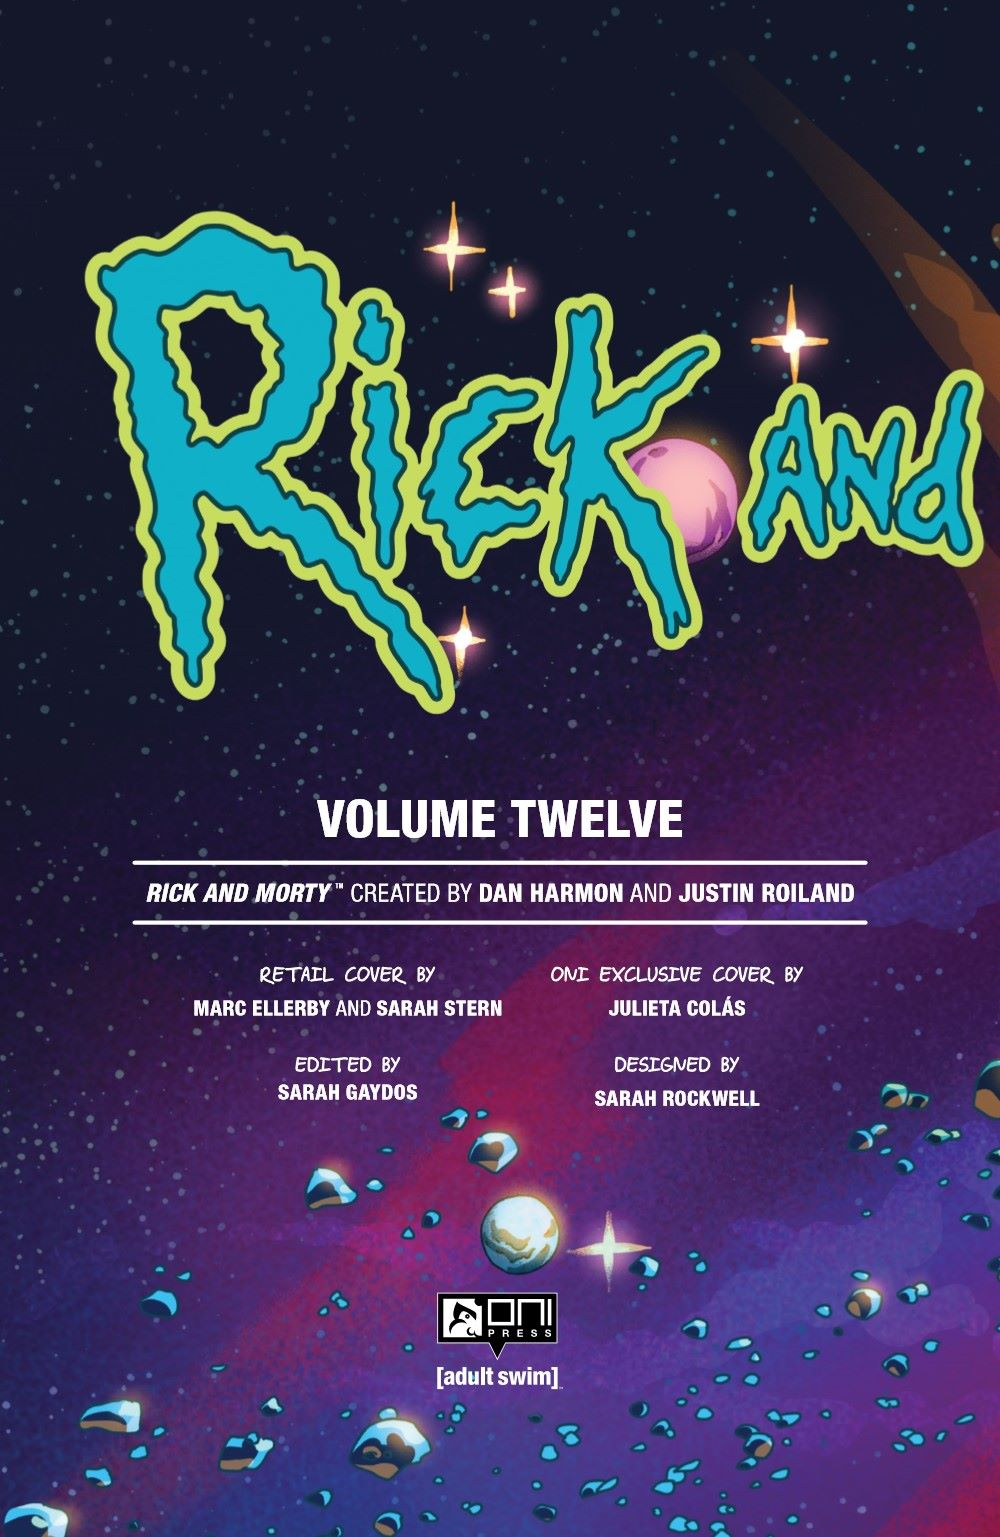 RICKMORTY-V12-TPB-REFERENCE-003 ComicList Previews: RICK AND MORTY VOLUME 12 TP